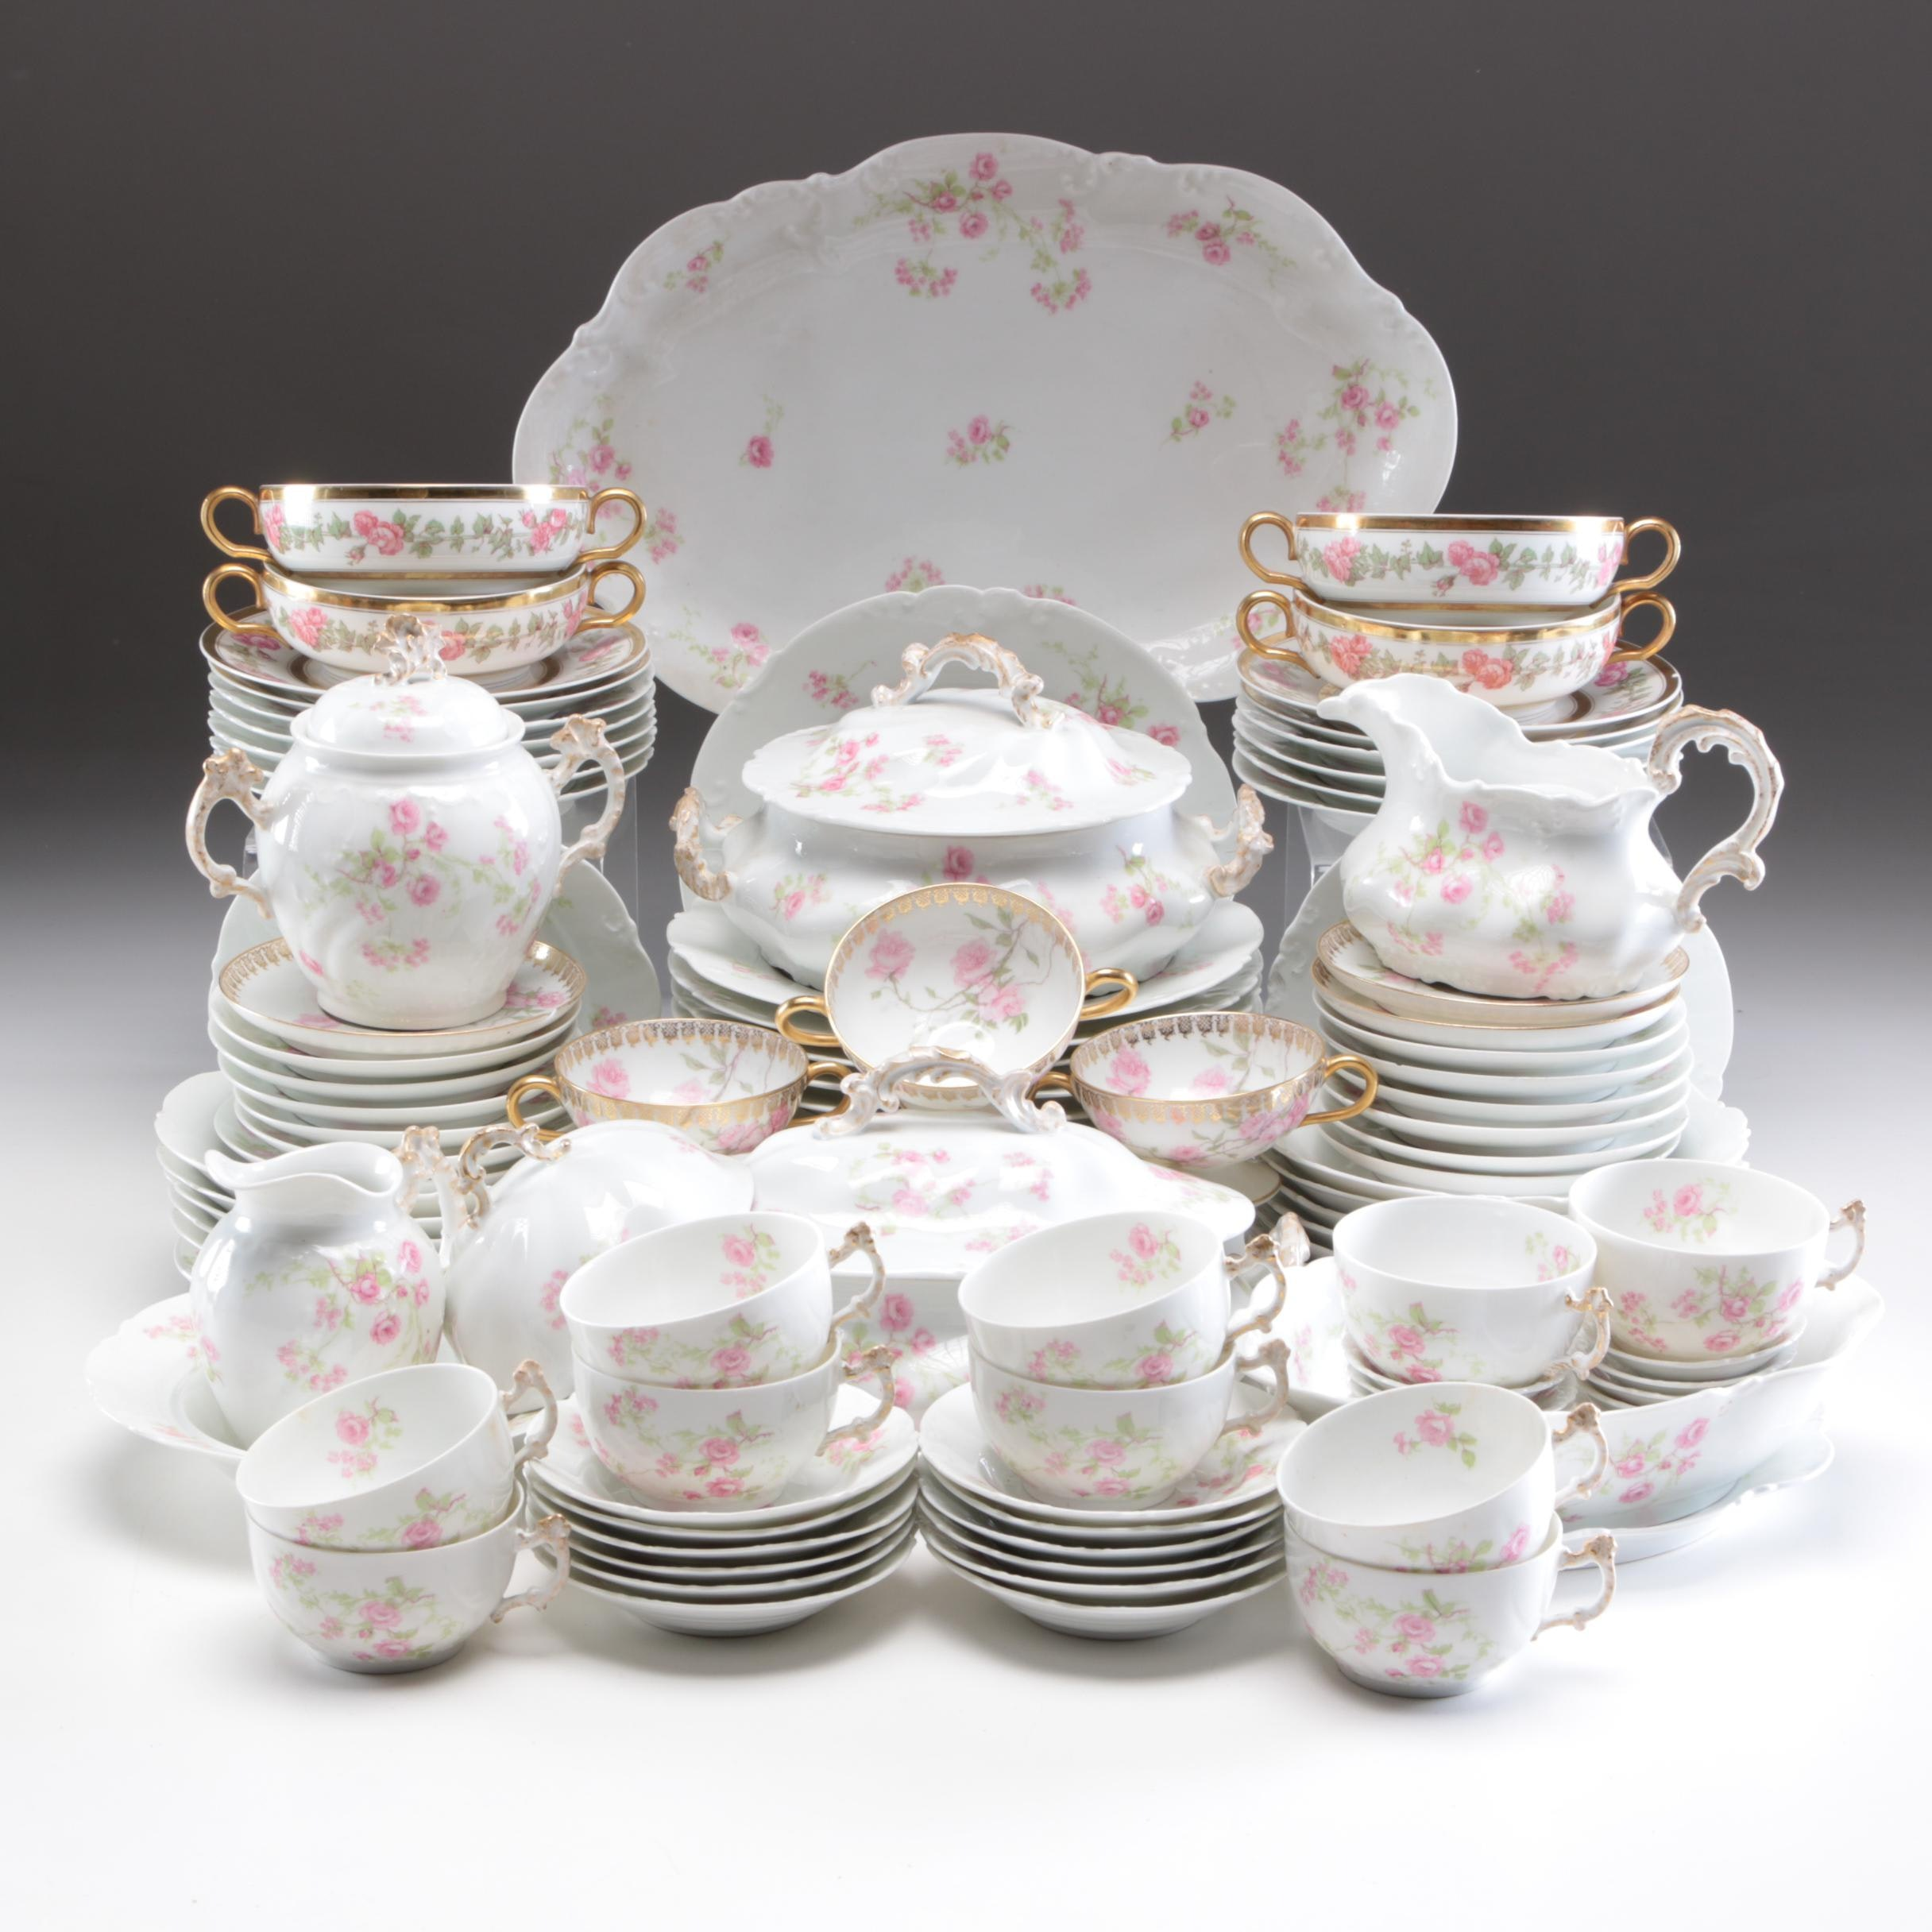 R. Delinières, Haviland and Other Porcelain Dinnerware, Early 20th Century